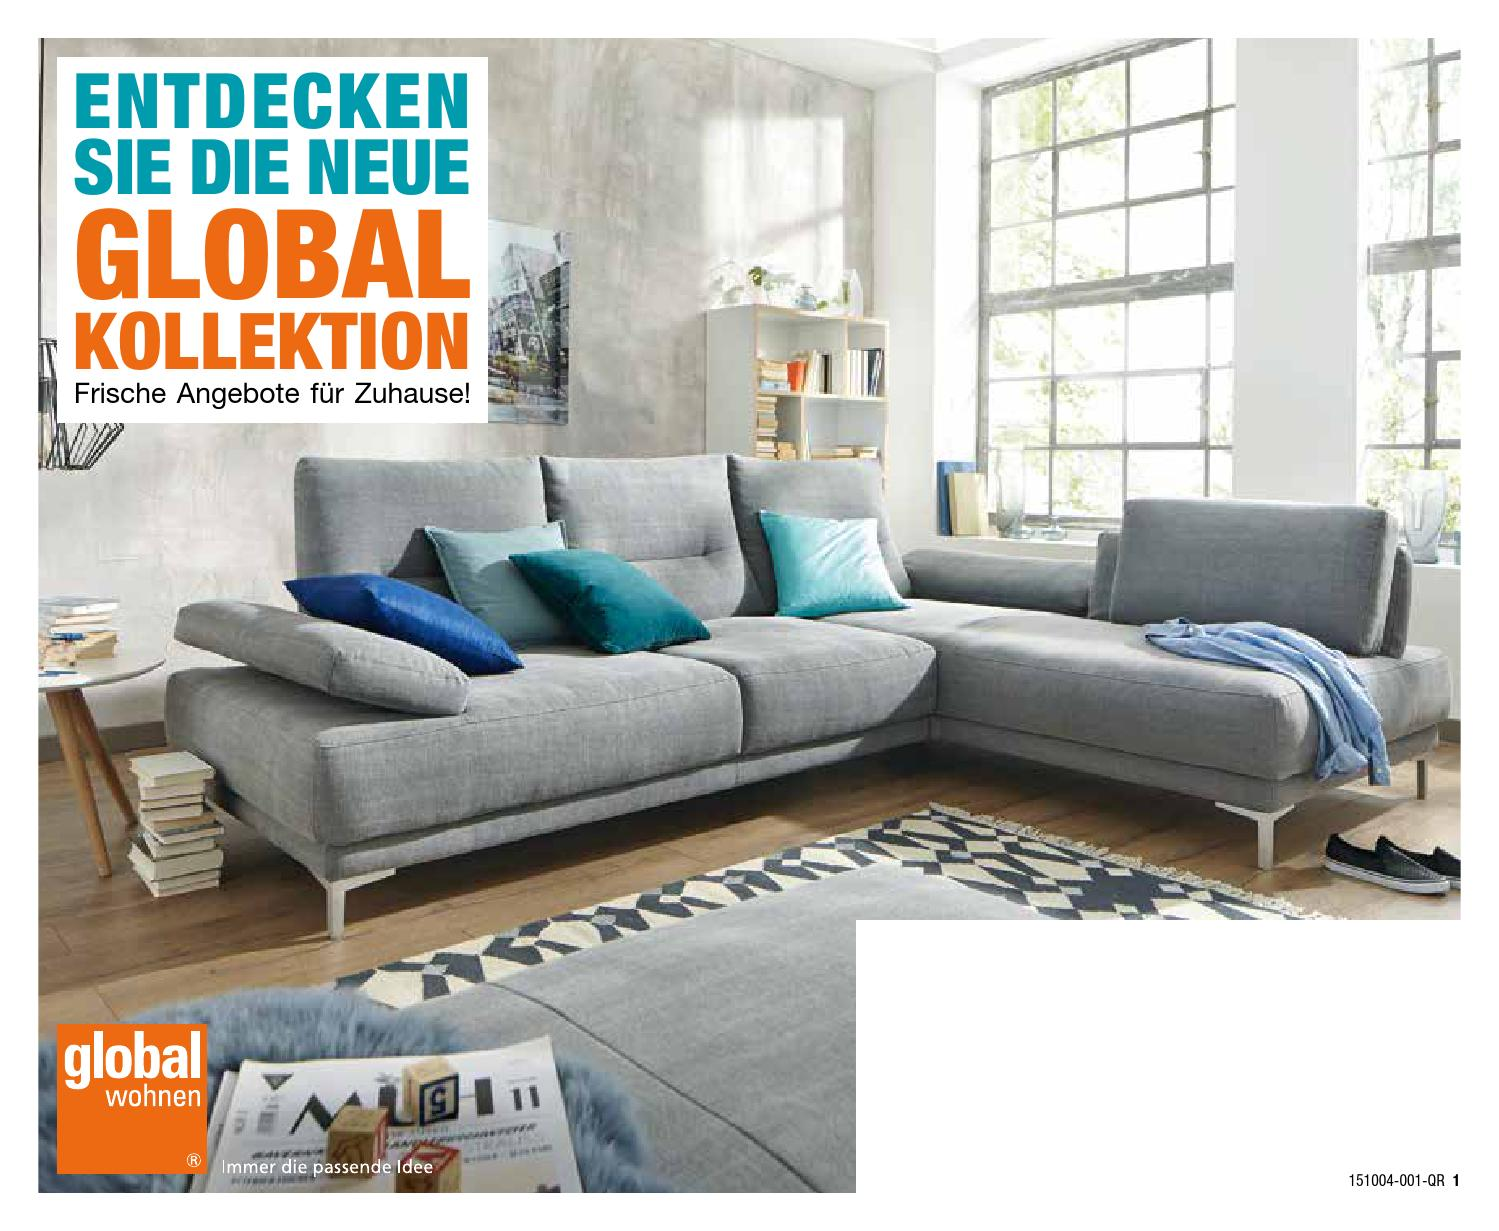 Global m bel by perspektive werbeagentur issuu - Global wohnen ...